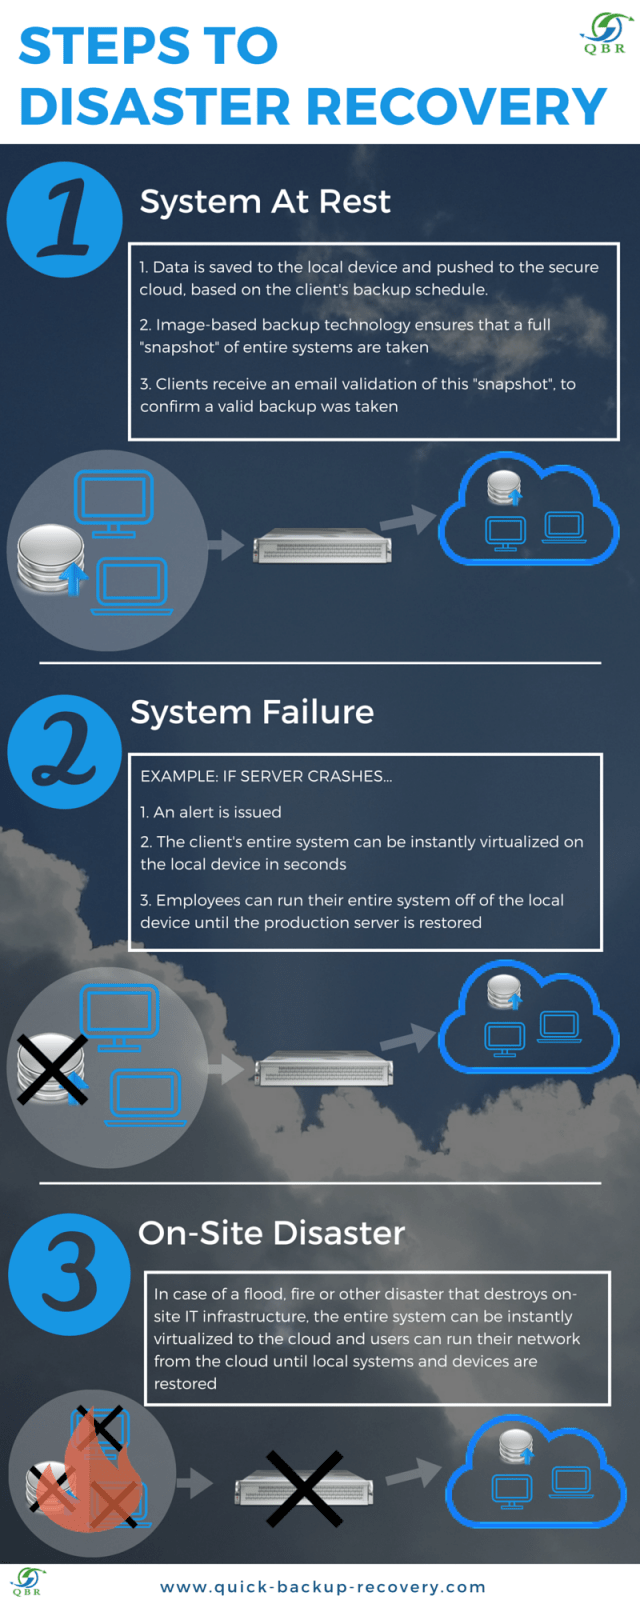 Steps to Disaster Recovery